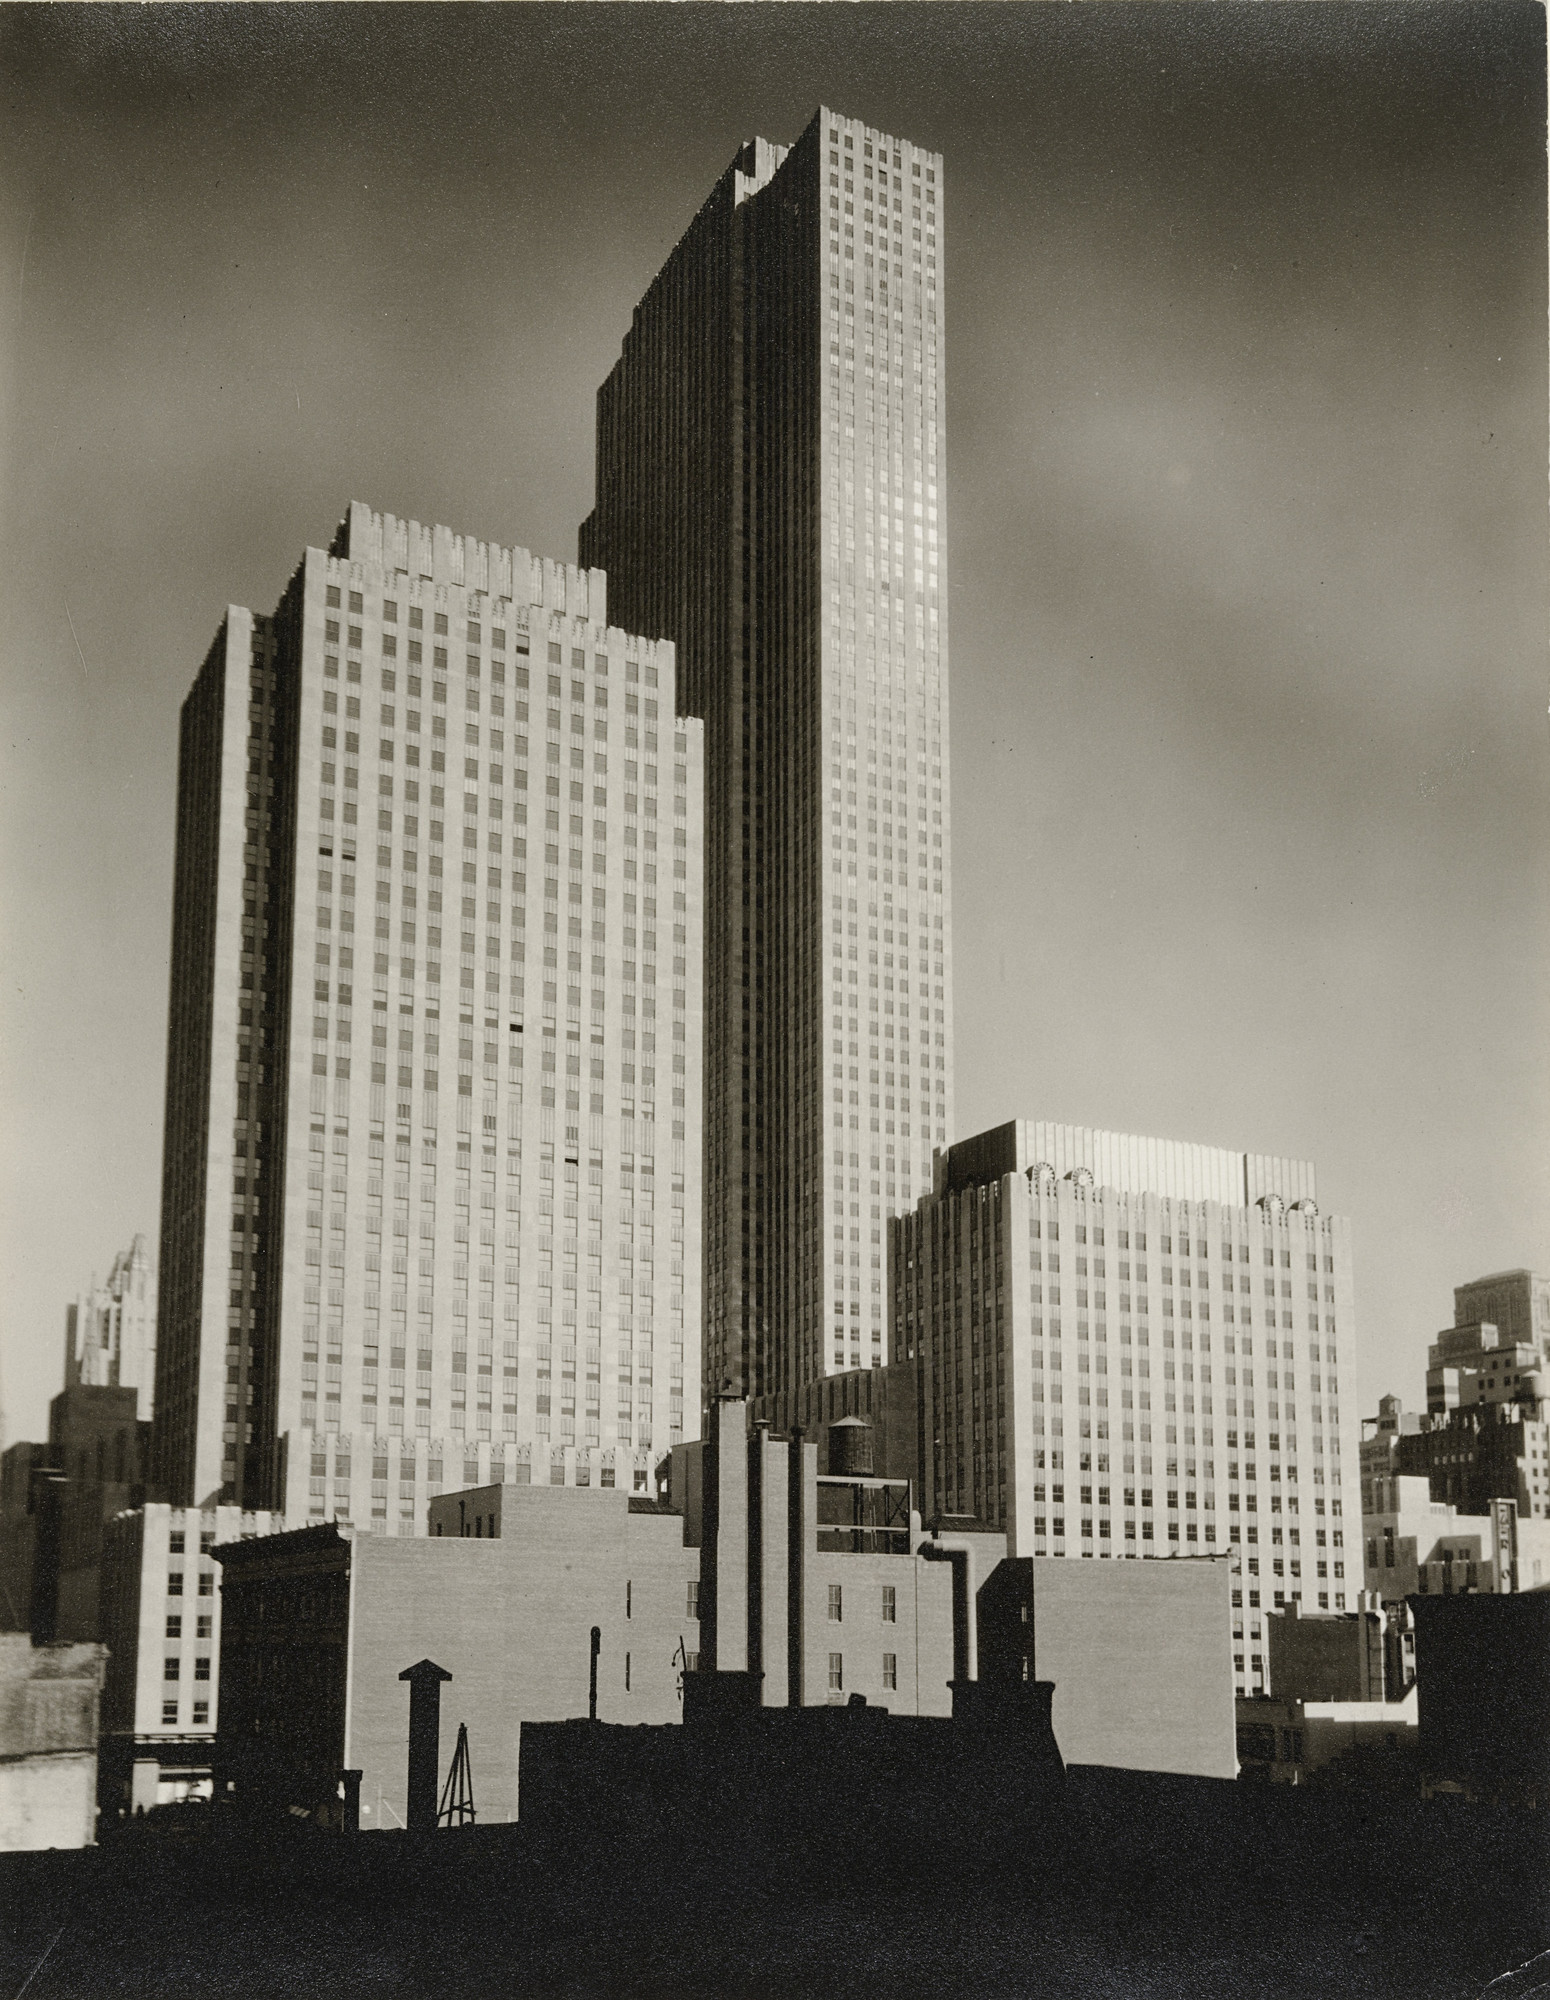 Berenice Abbott. Rockefeller Center. c. 1936